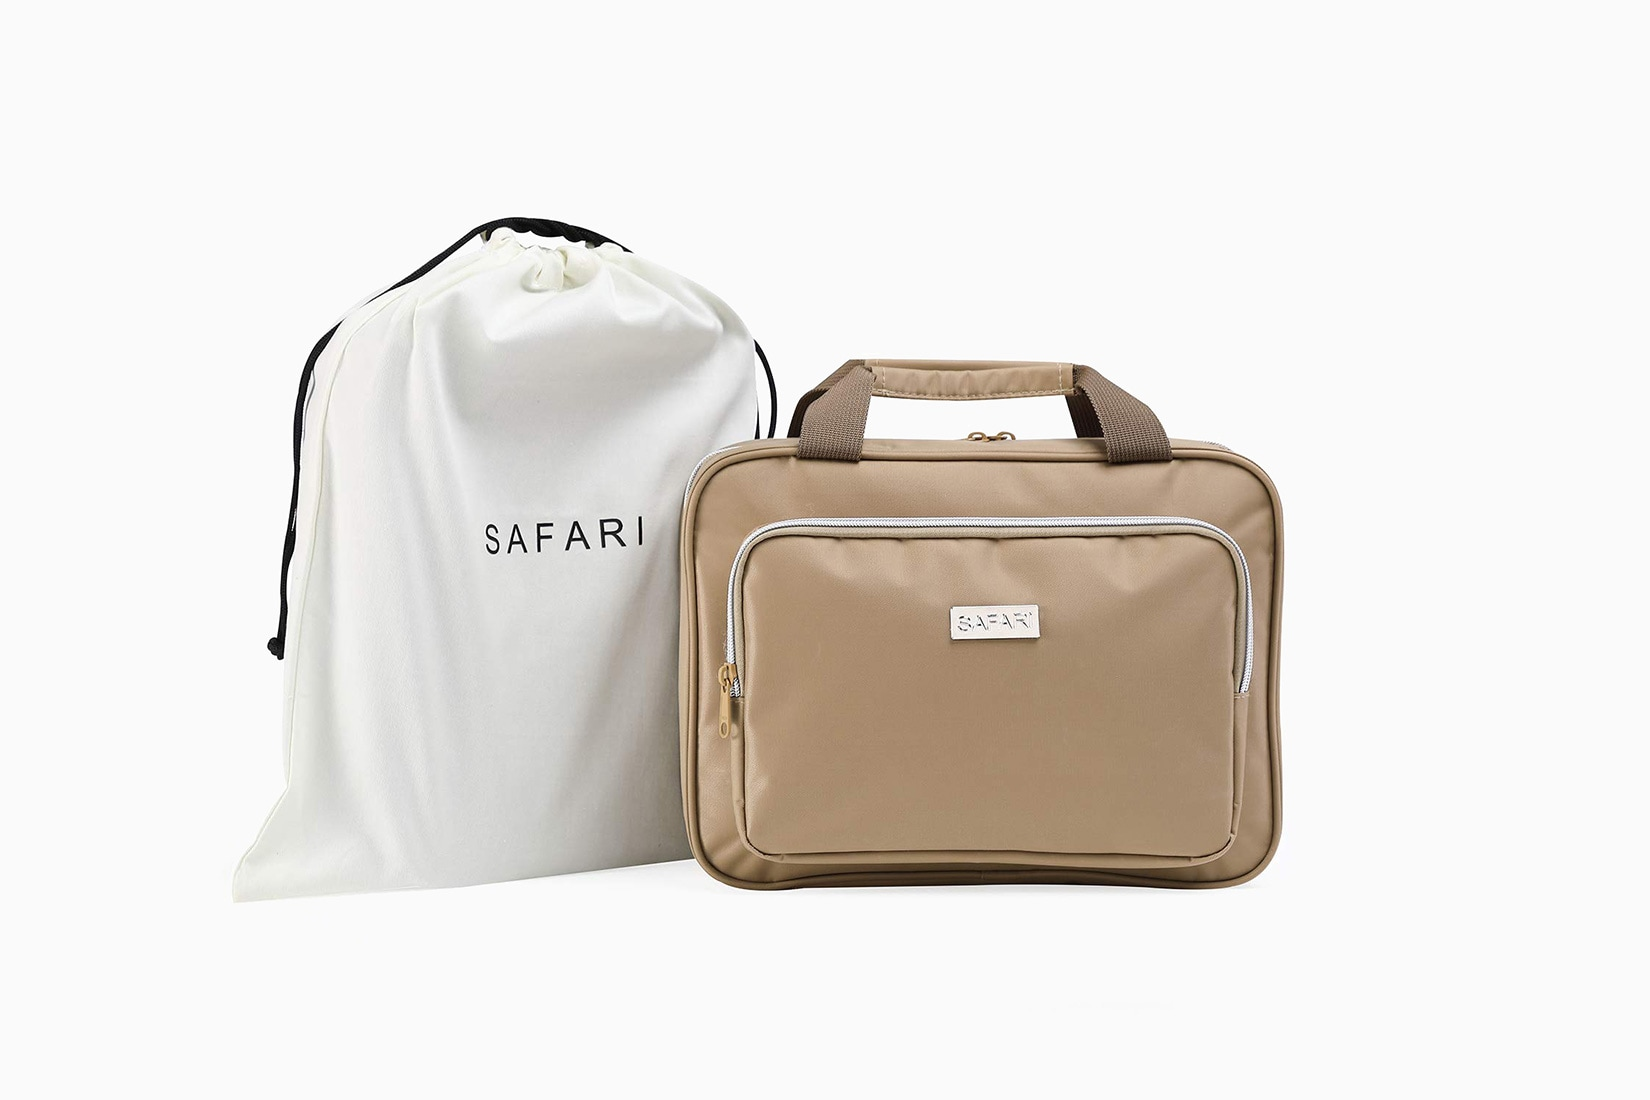 best toiletry bag women family size safari - Luxe Digital